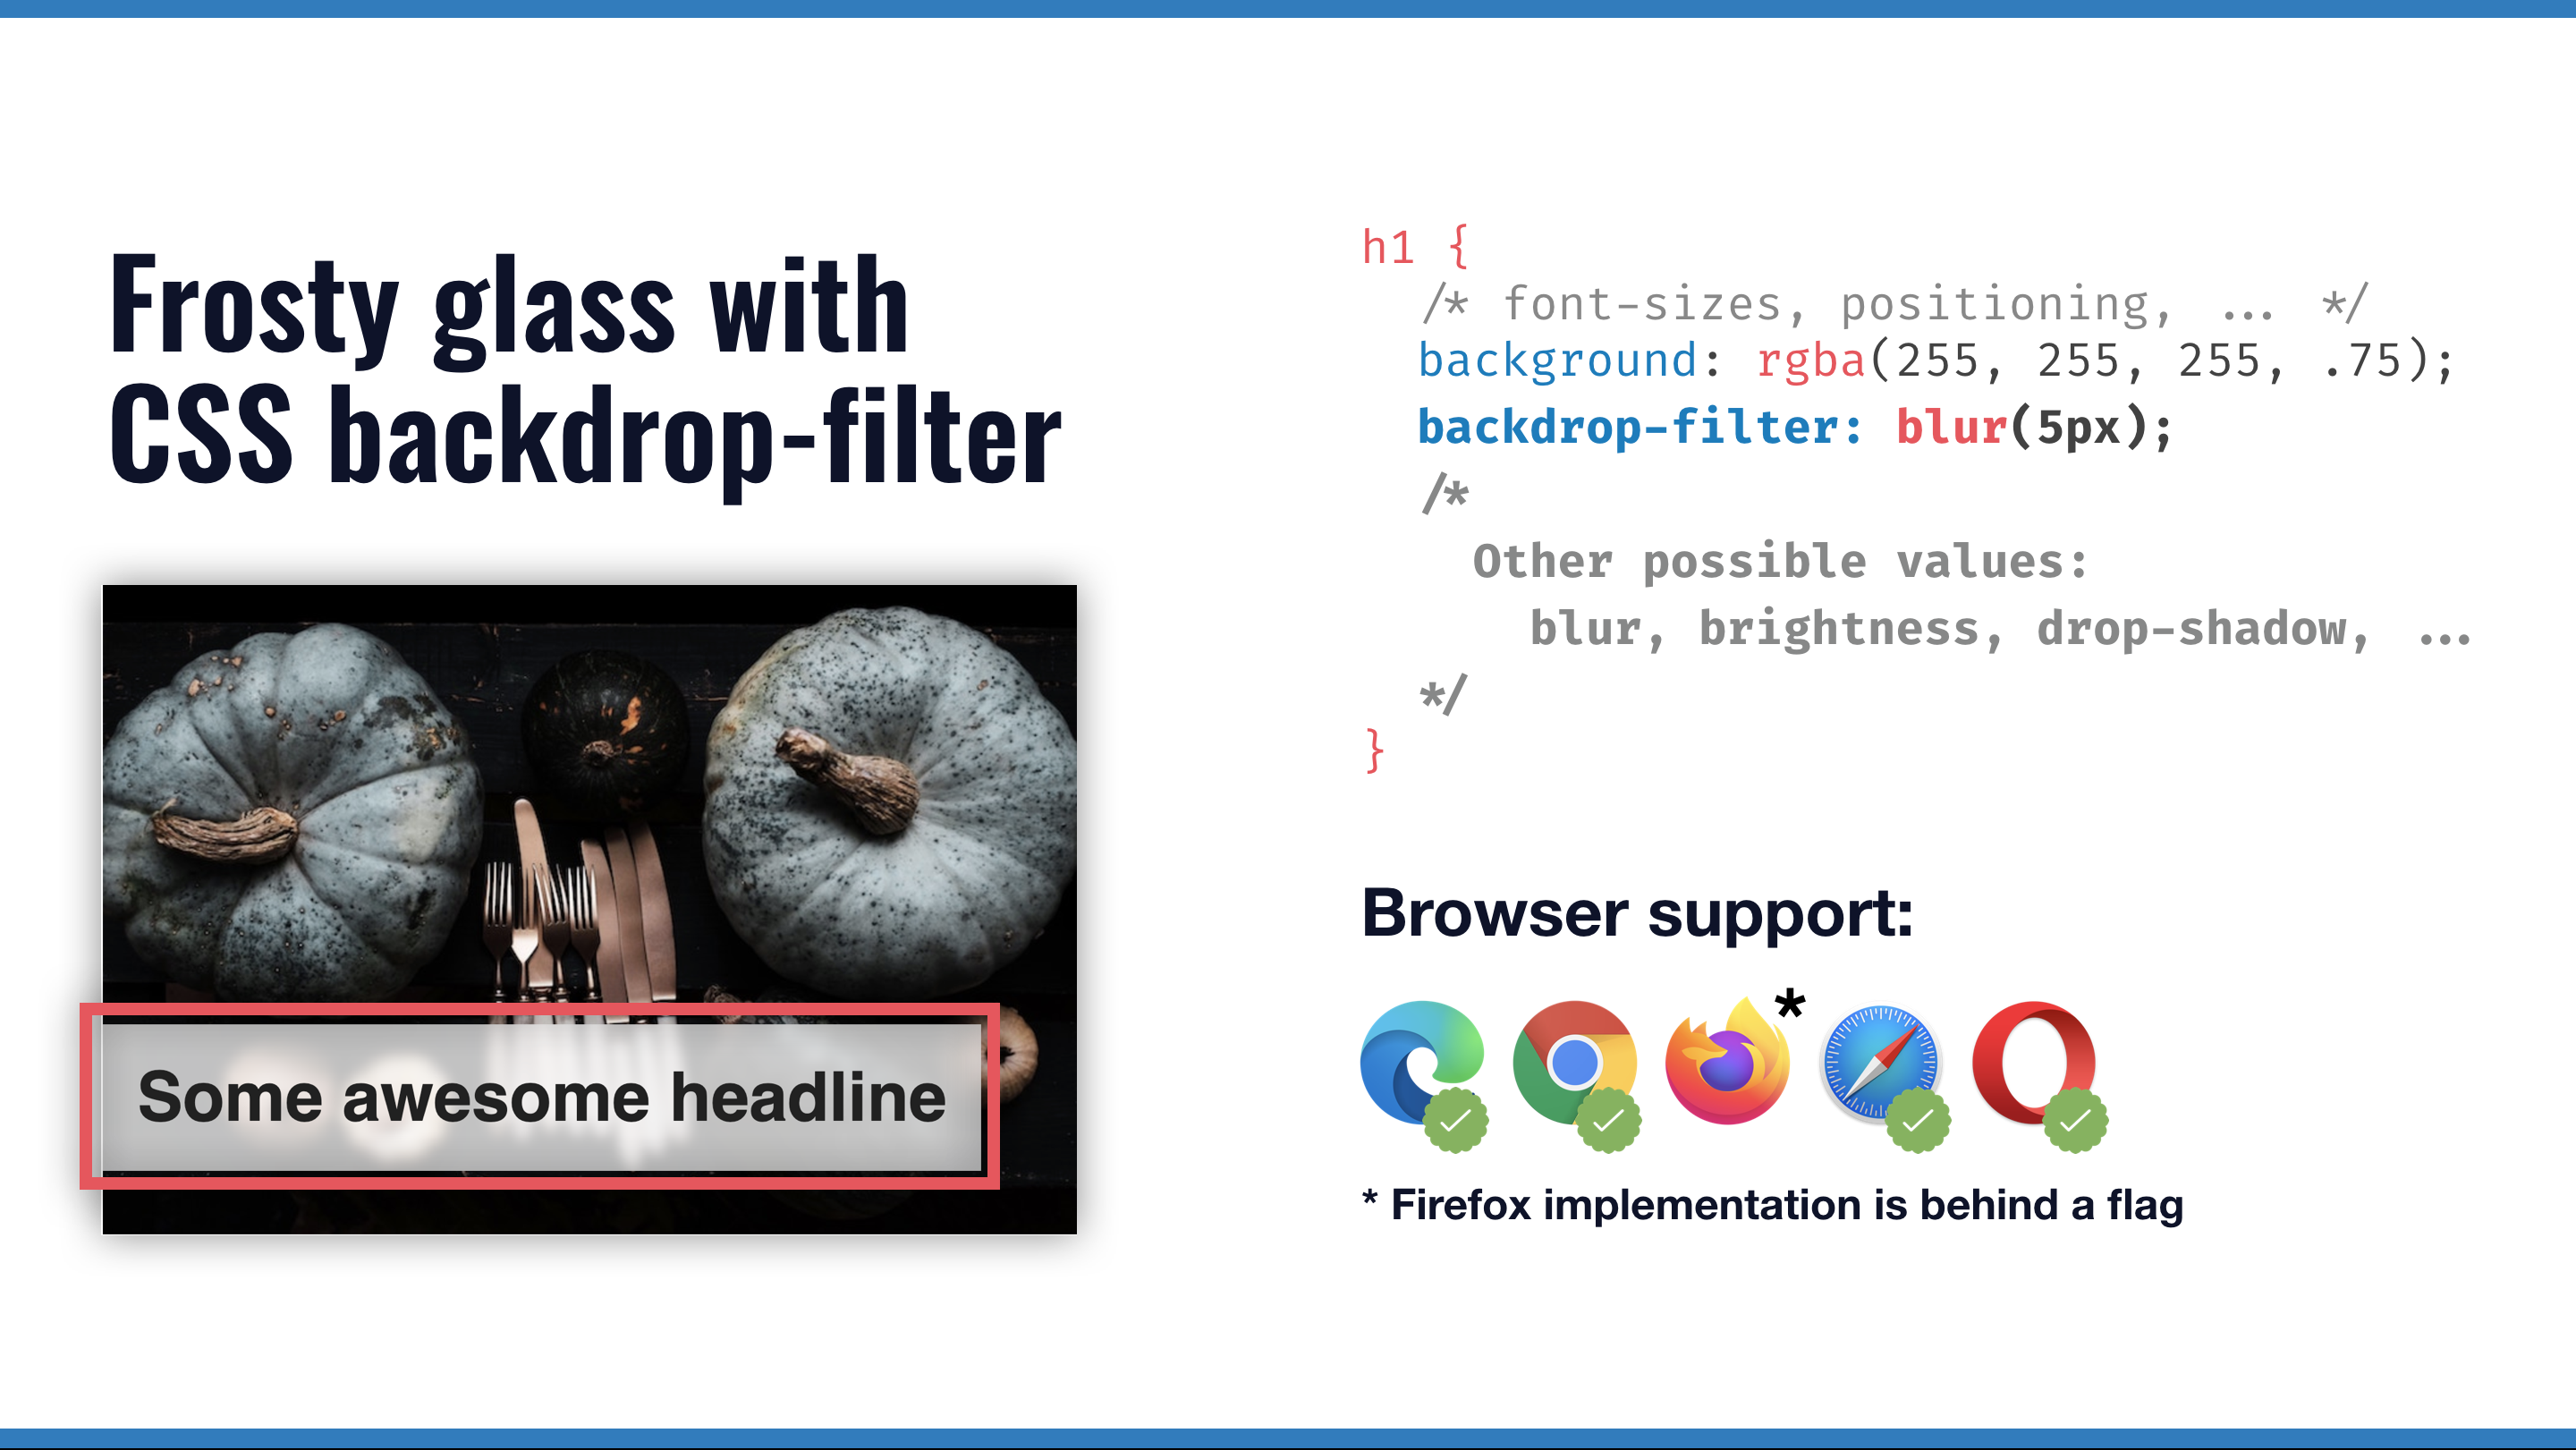 Developer sheet showing browser support of backdrop-filter, only firefox is missing. Additionally, it shows a frosty glass effect and the css to achieve it.